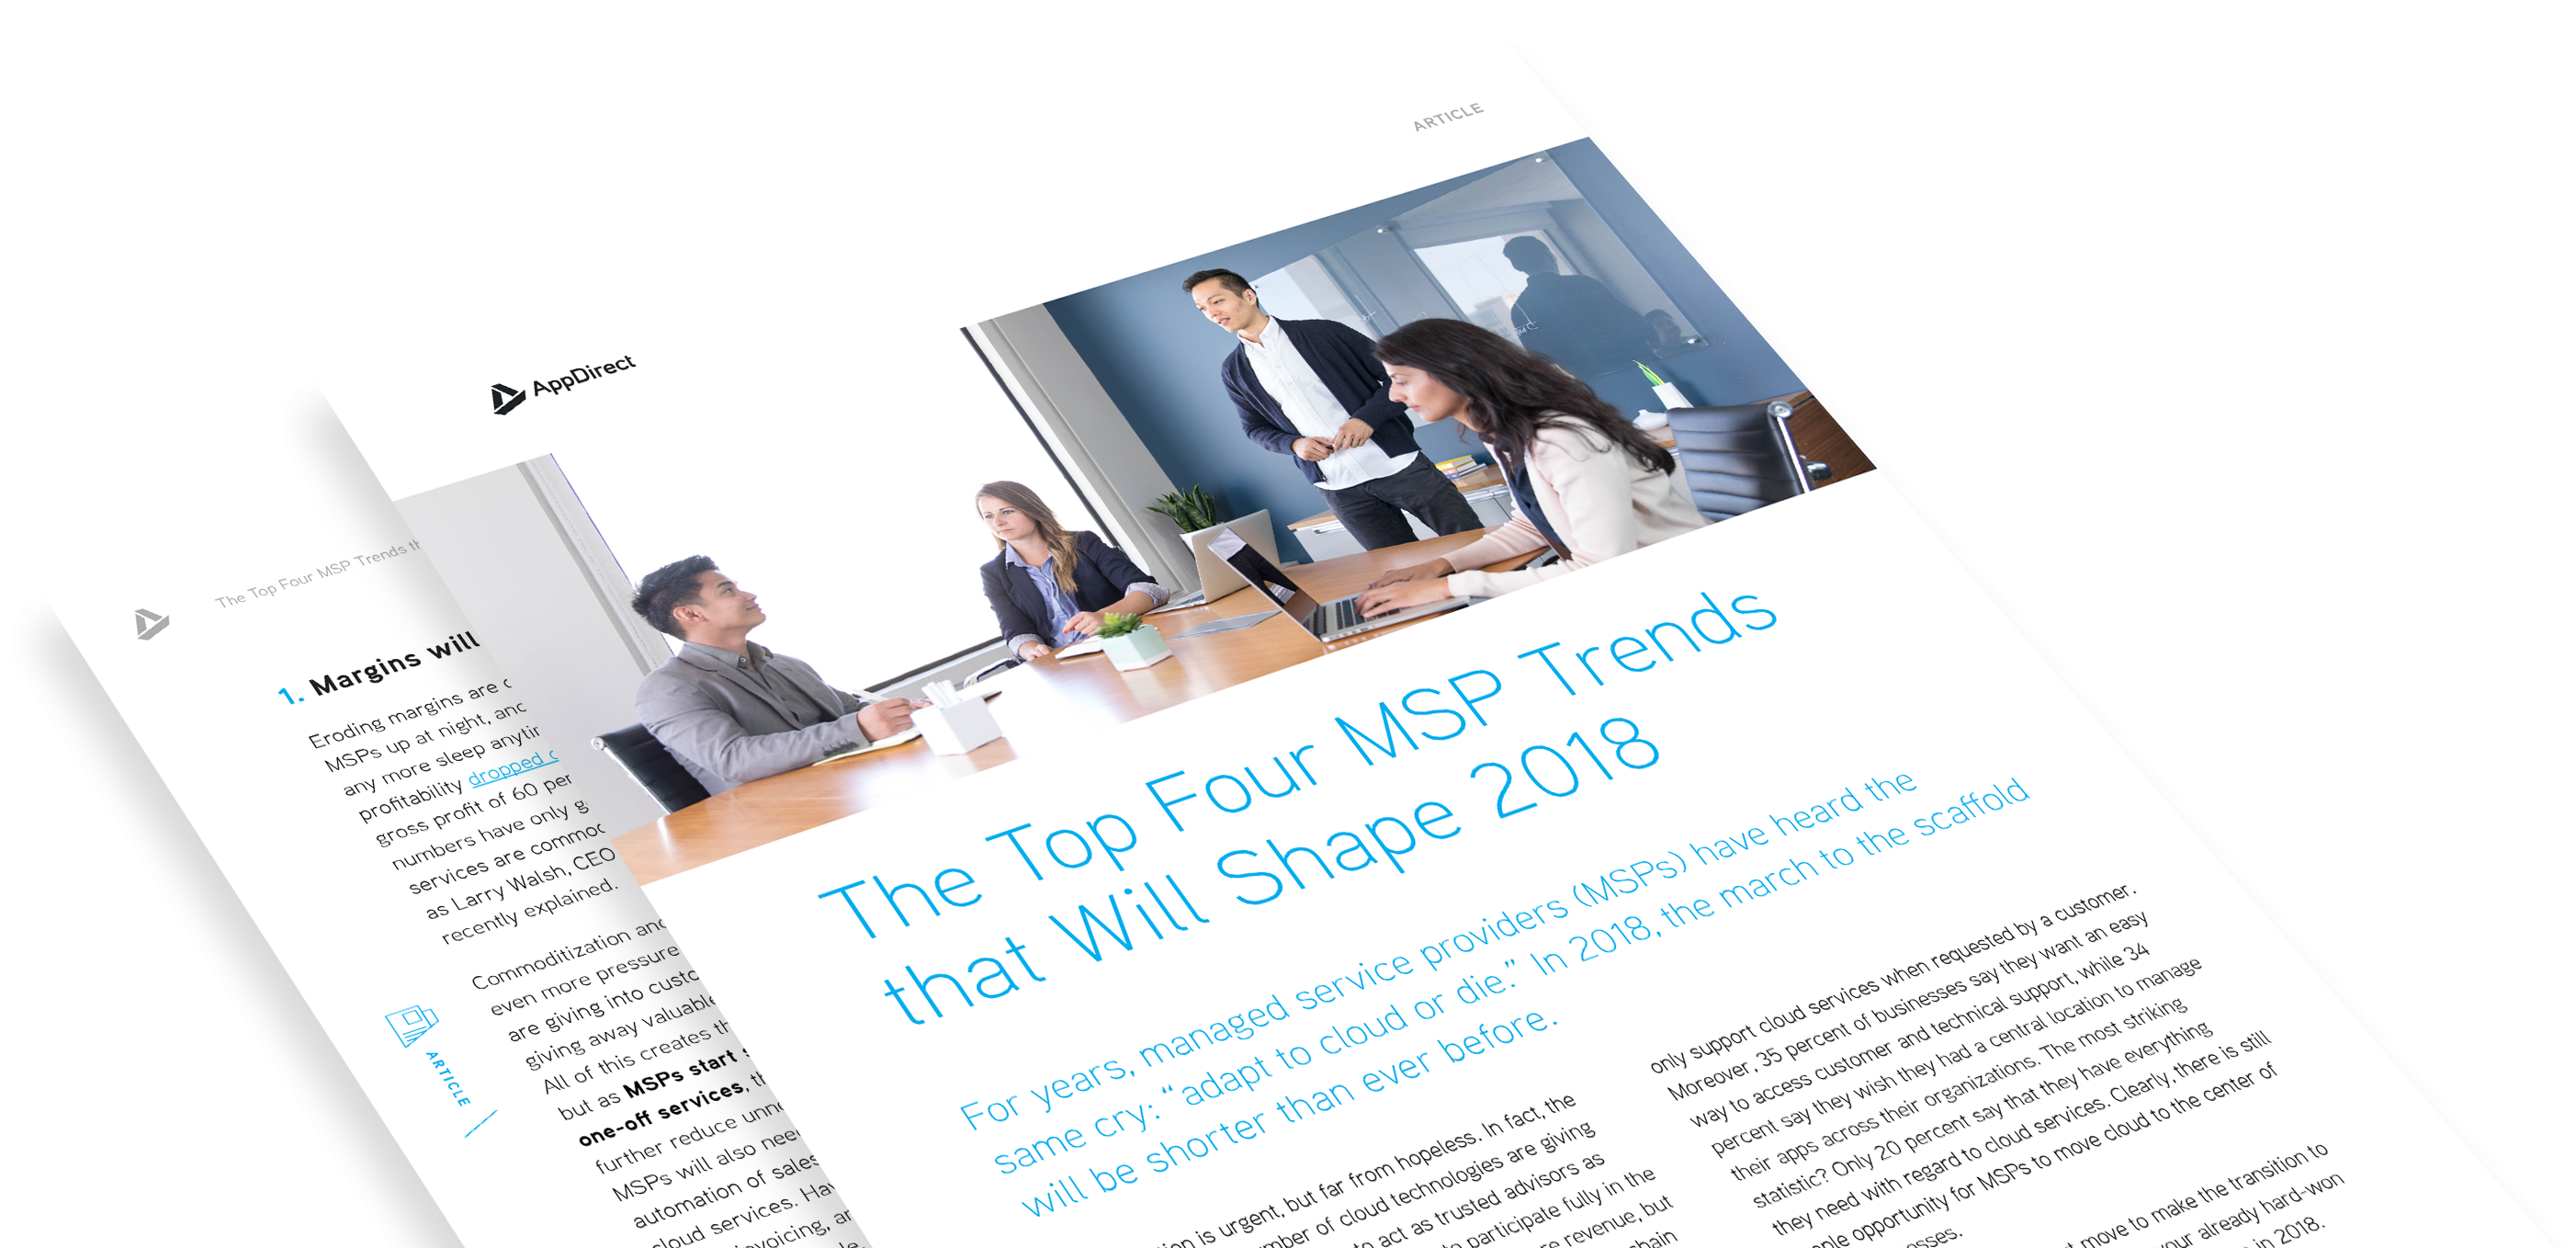 Top 4 MSP Trends Shaping 2018